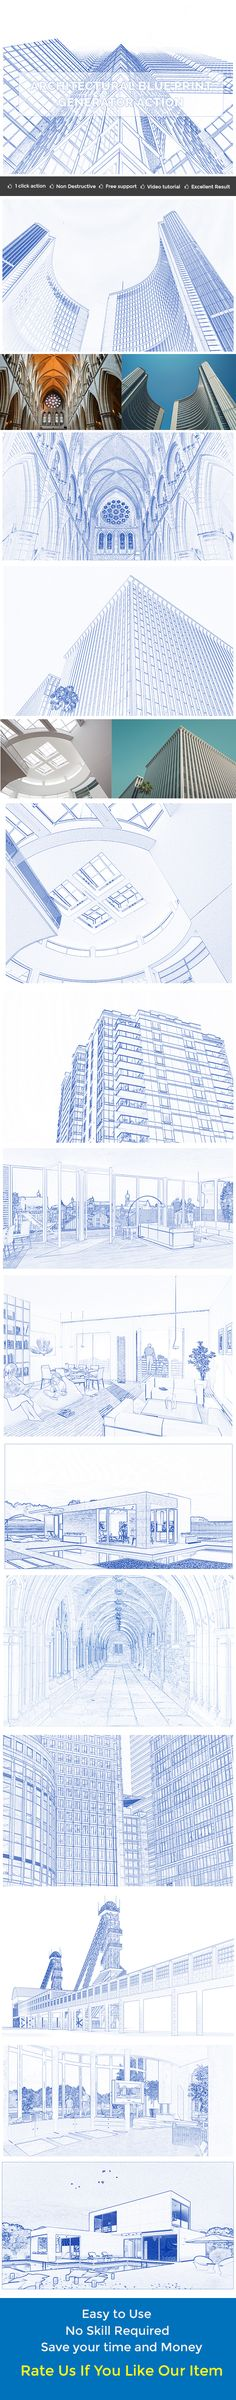 Architectural Blue Print Generator Action — Photoshop ATN #graphic #industry • Available here → https://graphicriver.net/item/architectural-blue-print-generator-action/18627403?ref=pxcr